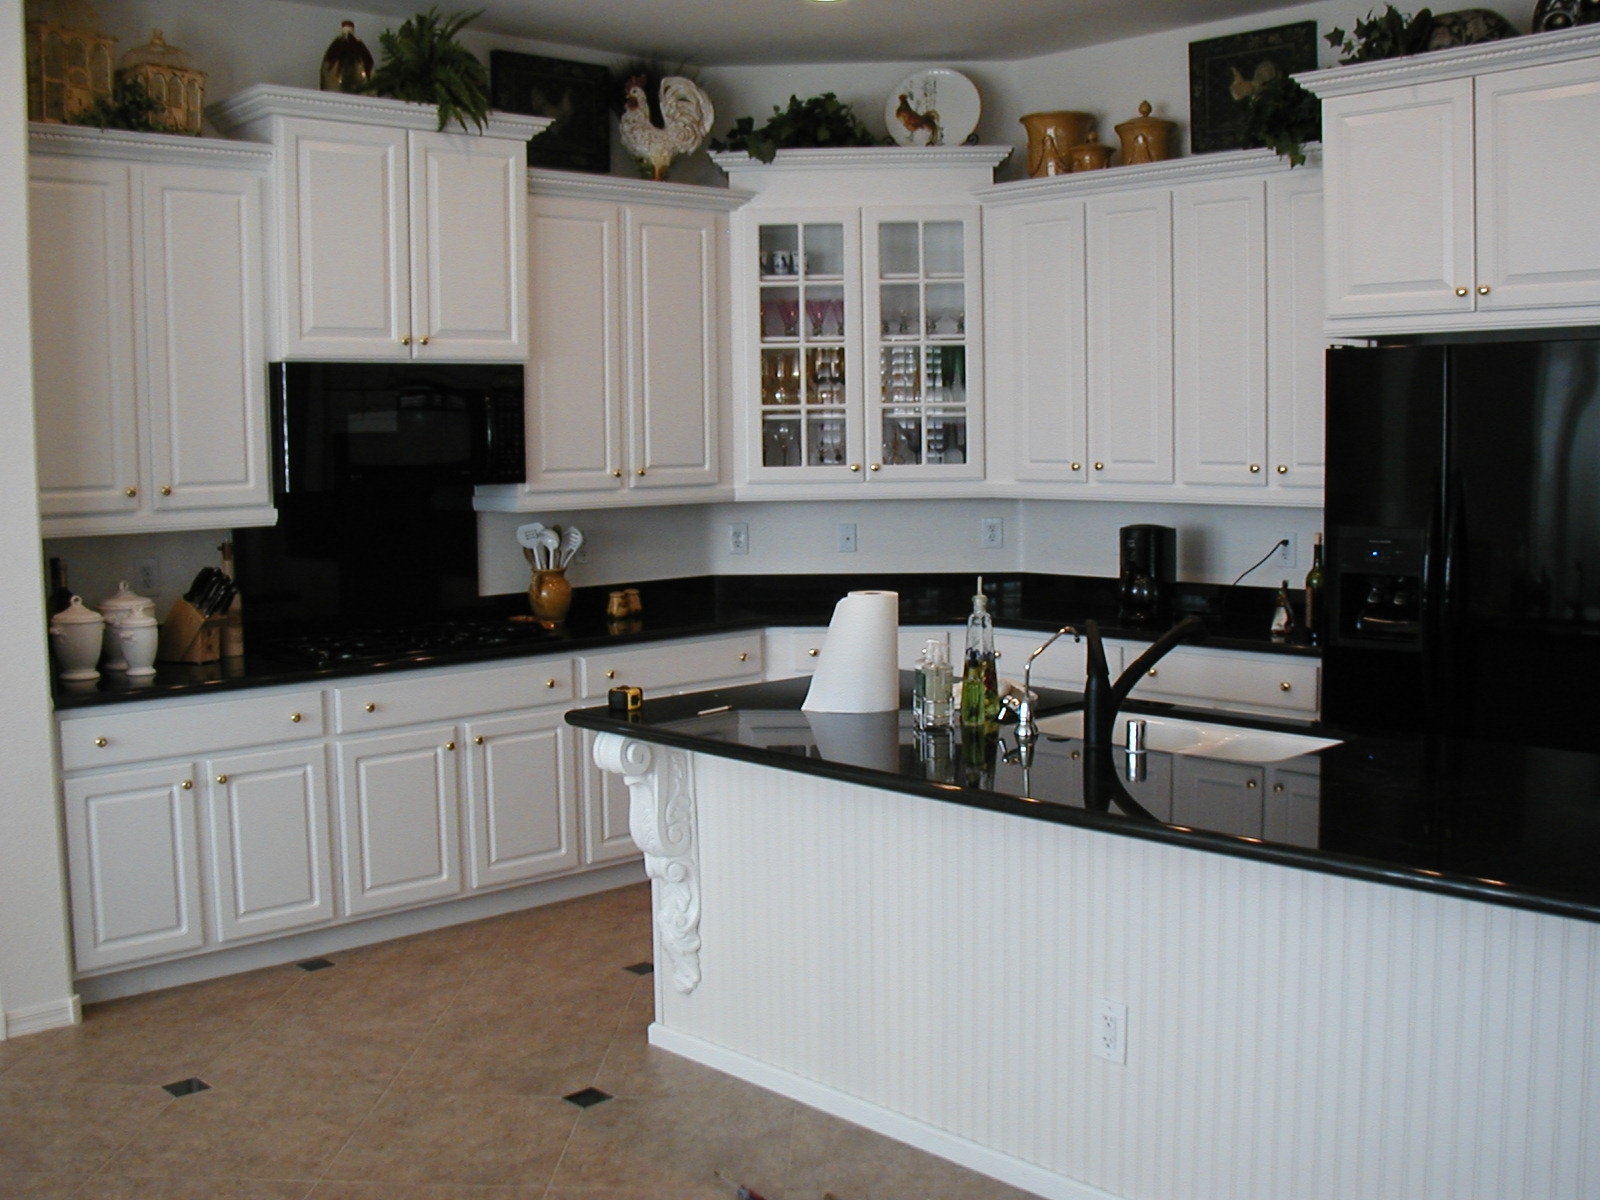 Hmh designs white kitchen cabinets timeless and transcendent for White kitchens cabinets